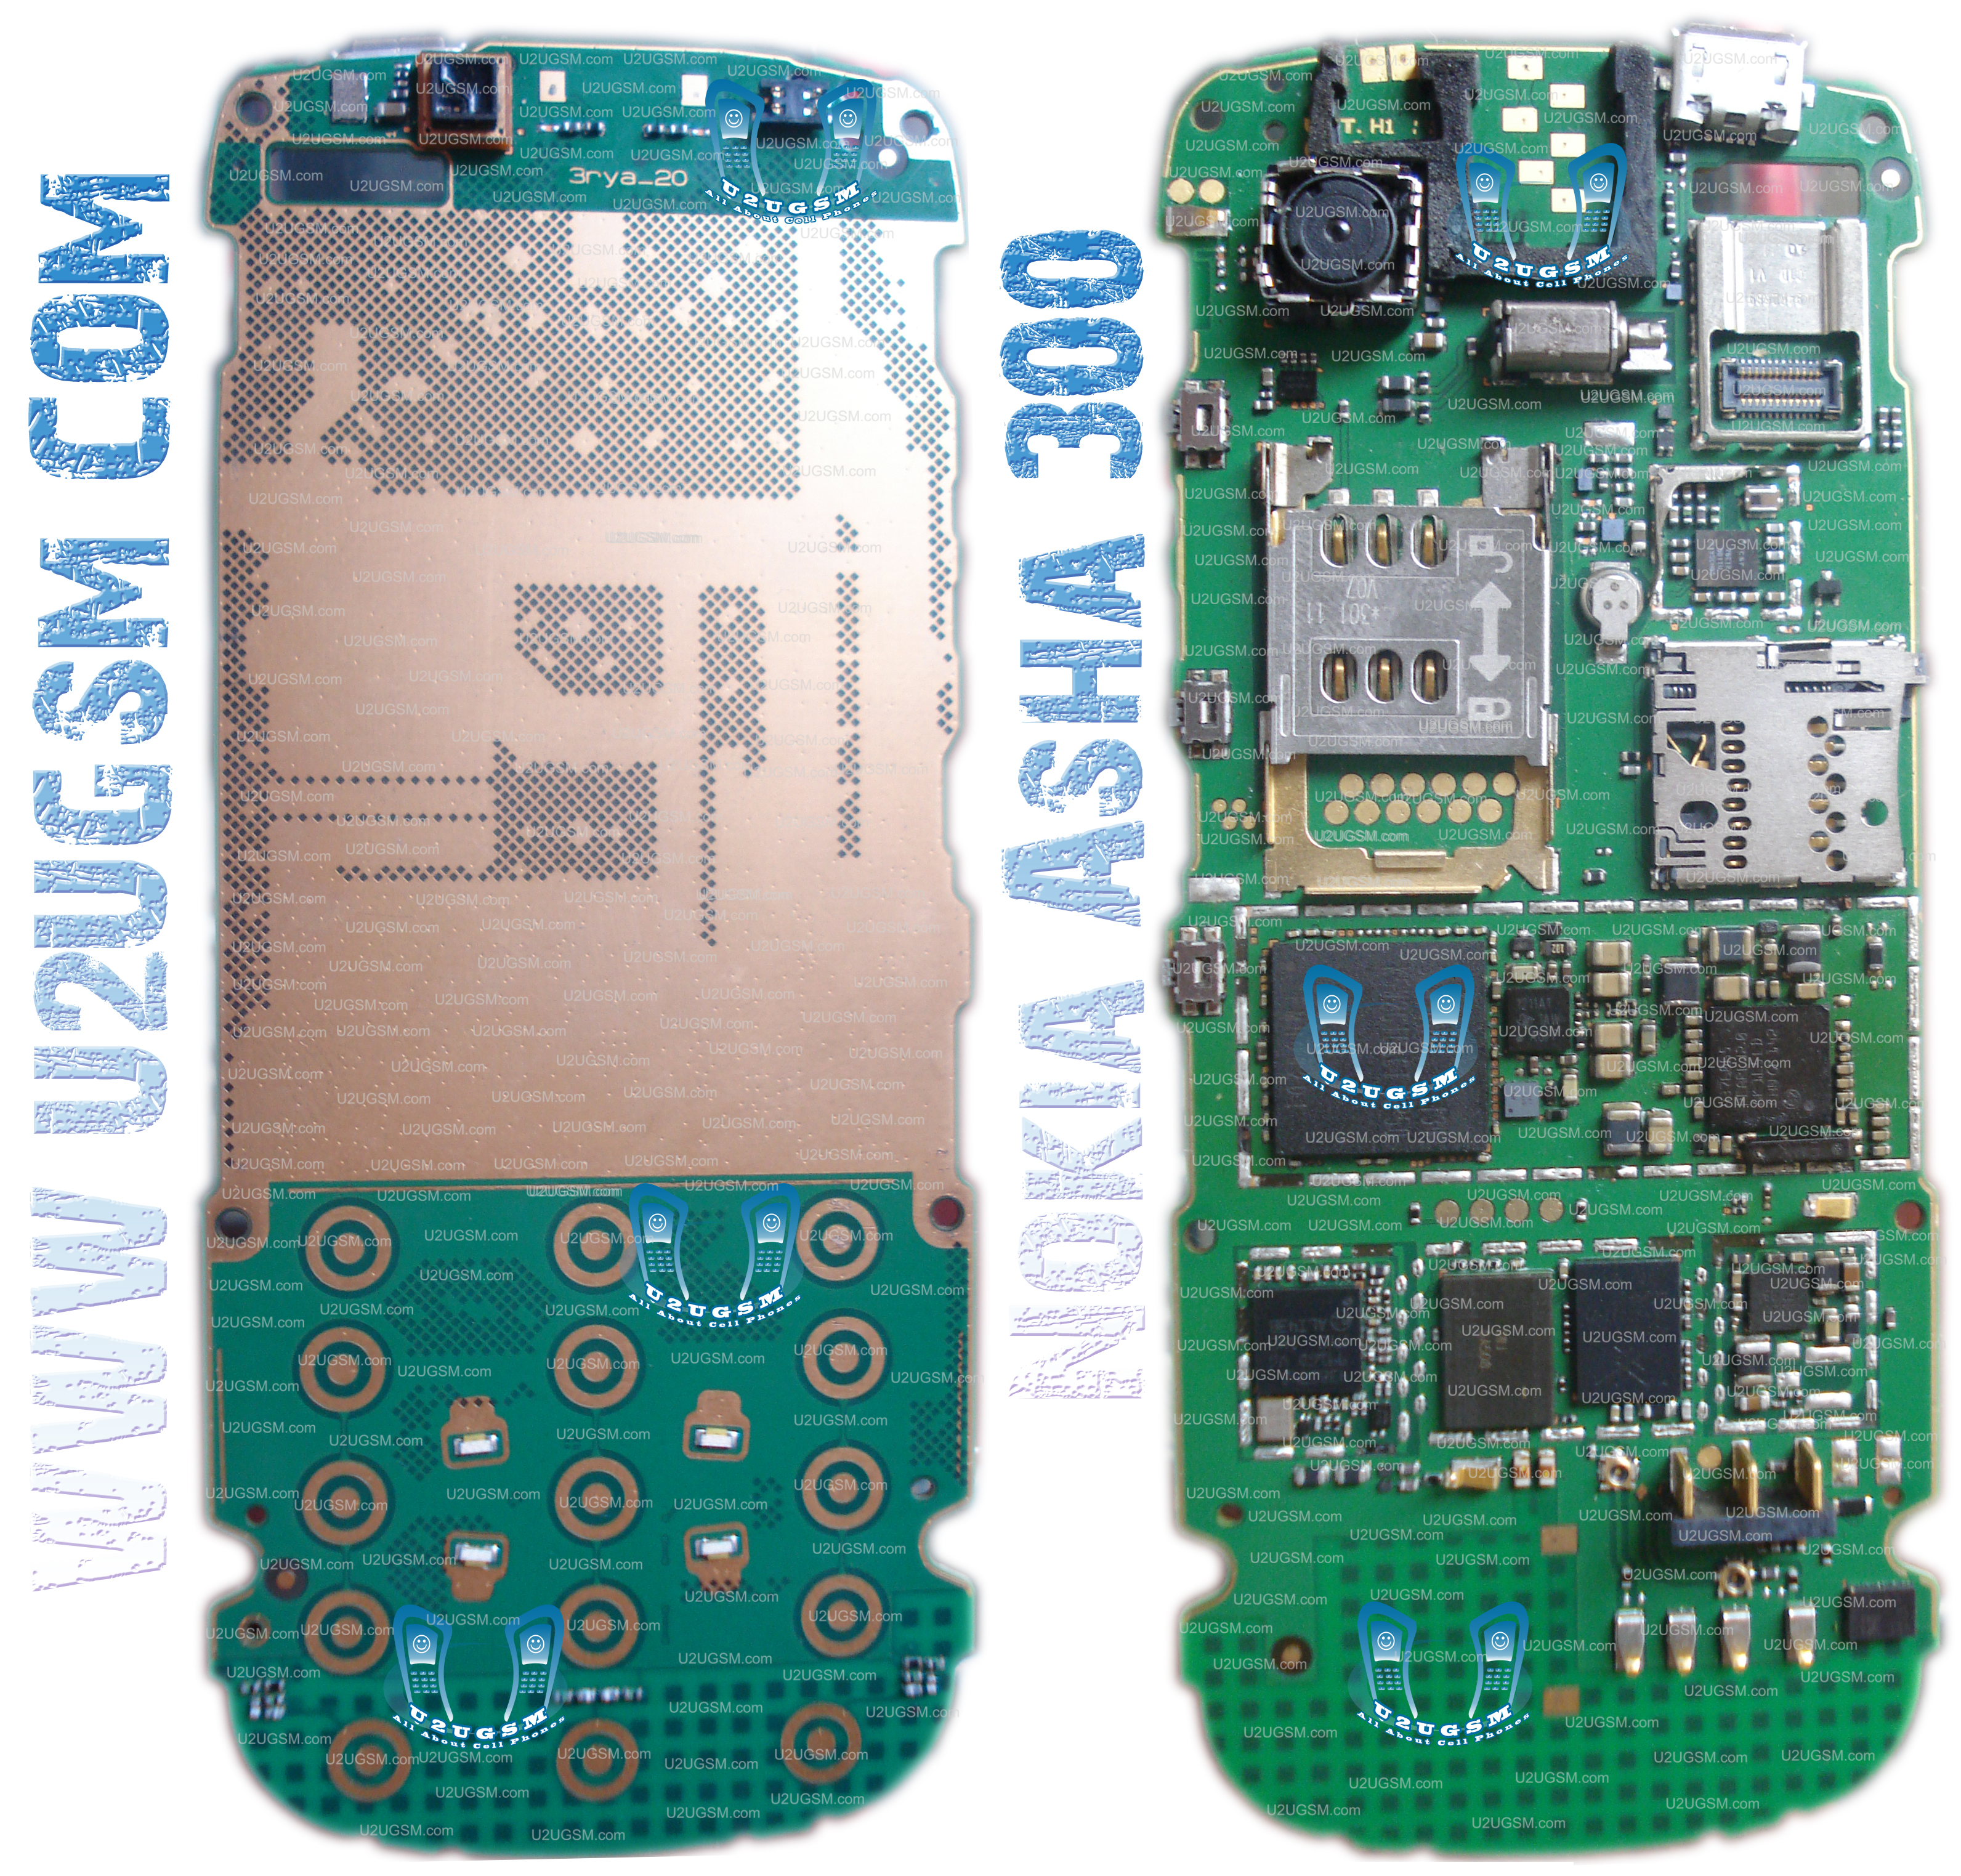 Nokia Asha 300 Full Pcb Diagram Mother Board Layout